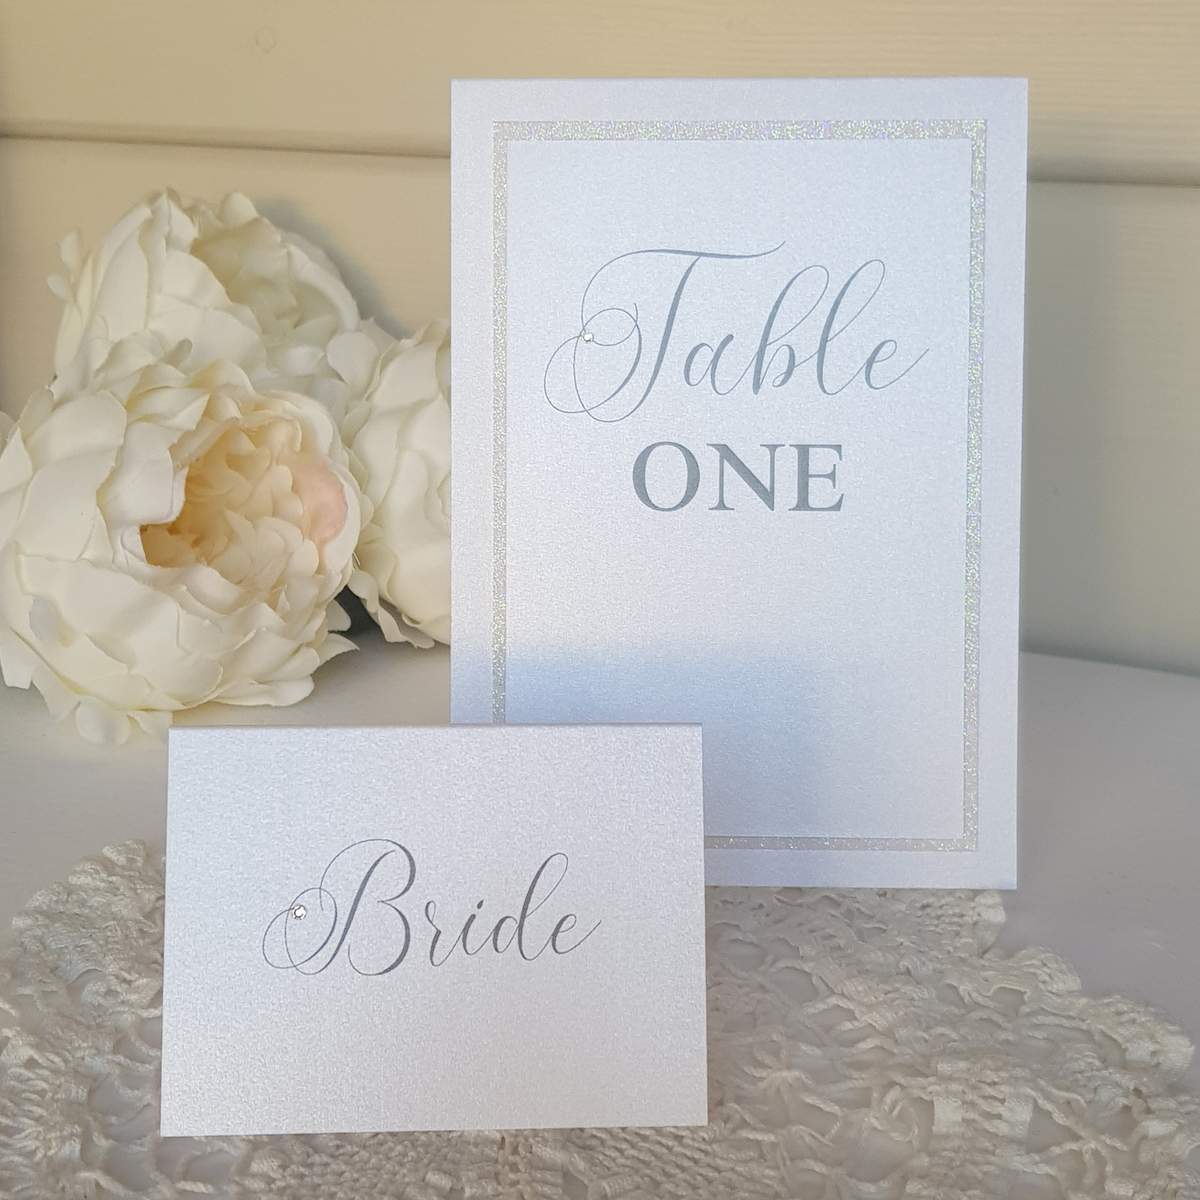 Elegant white wedding table stationery, a place card and table number